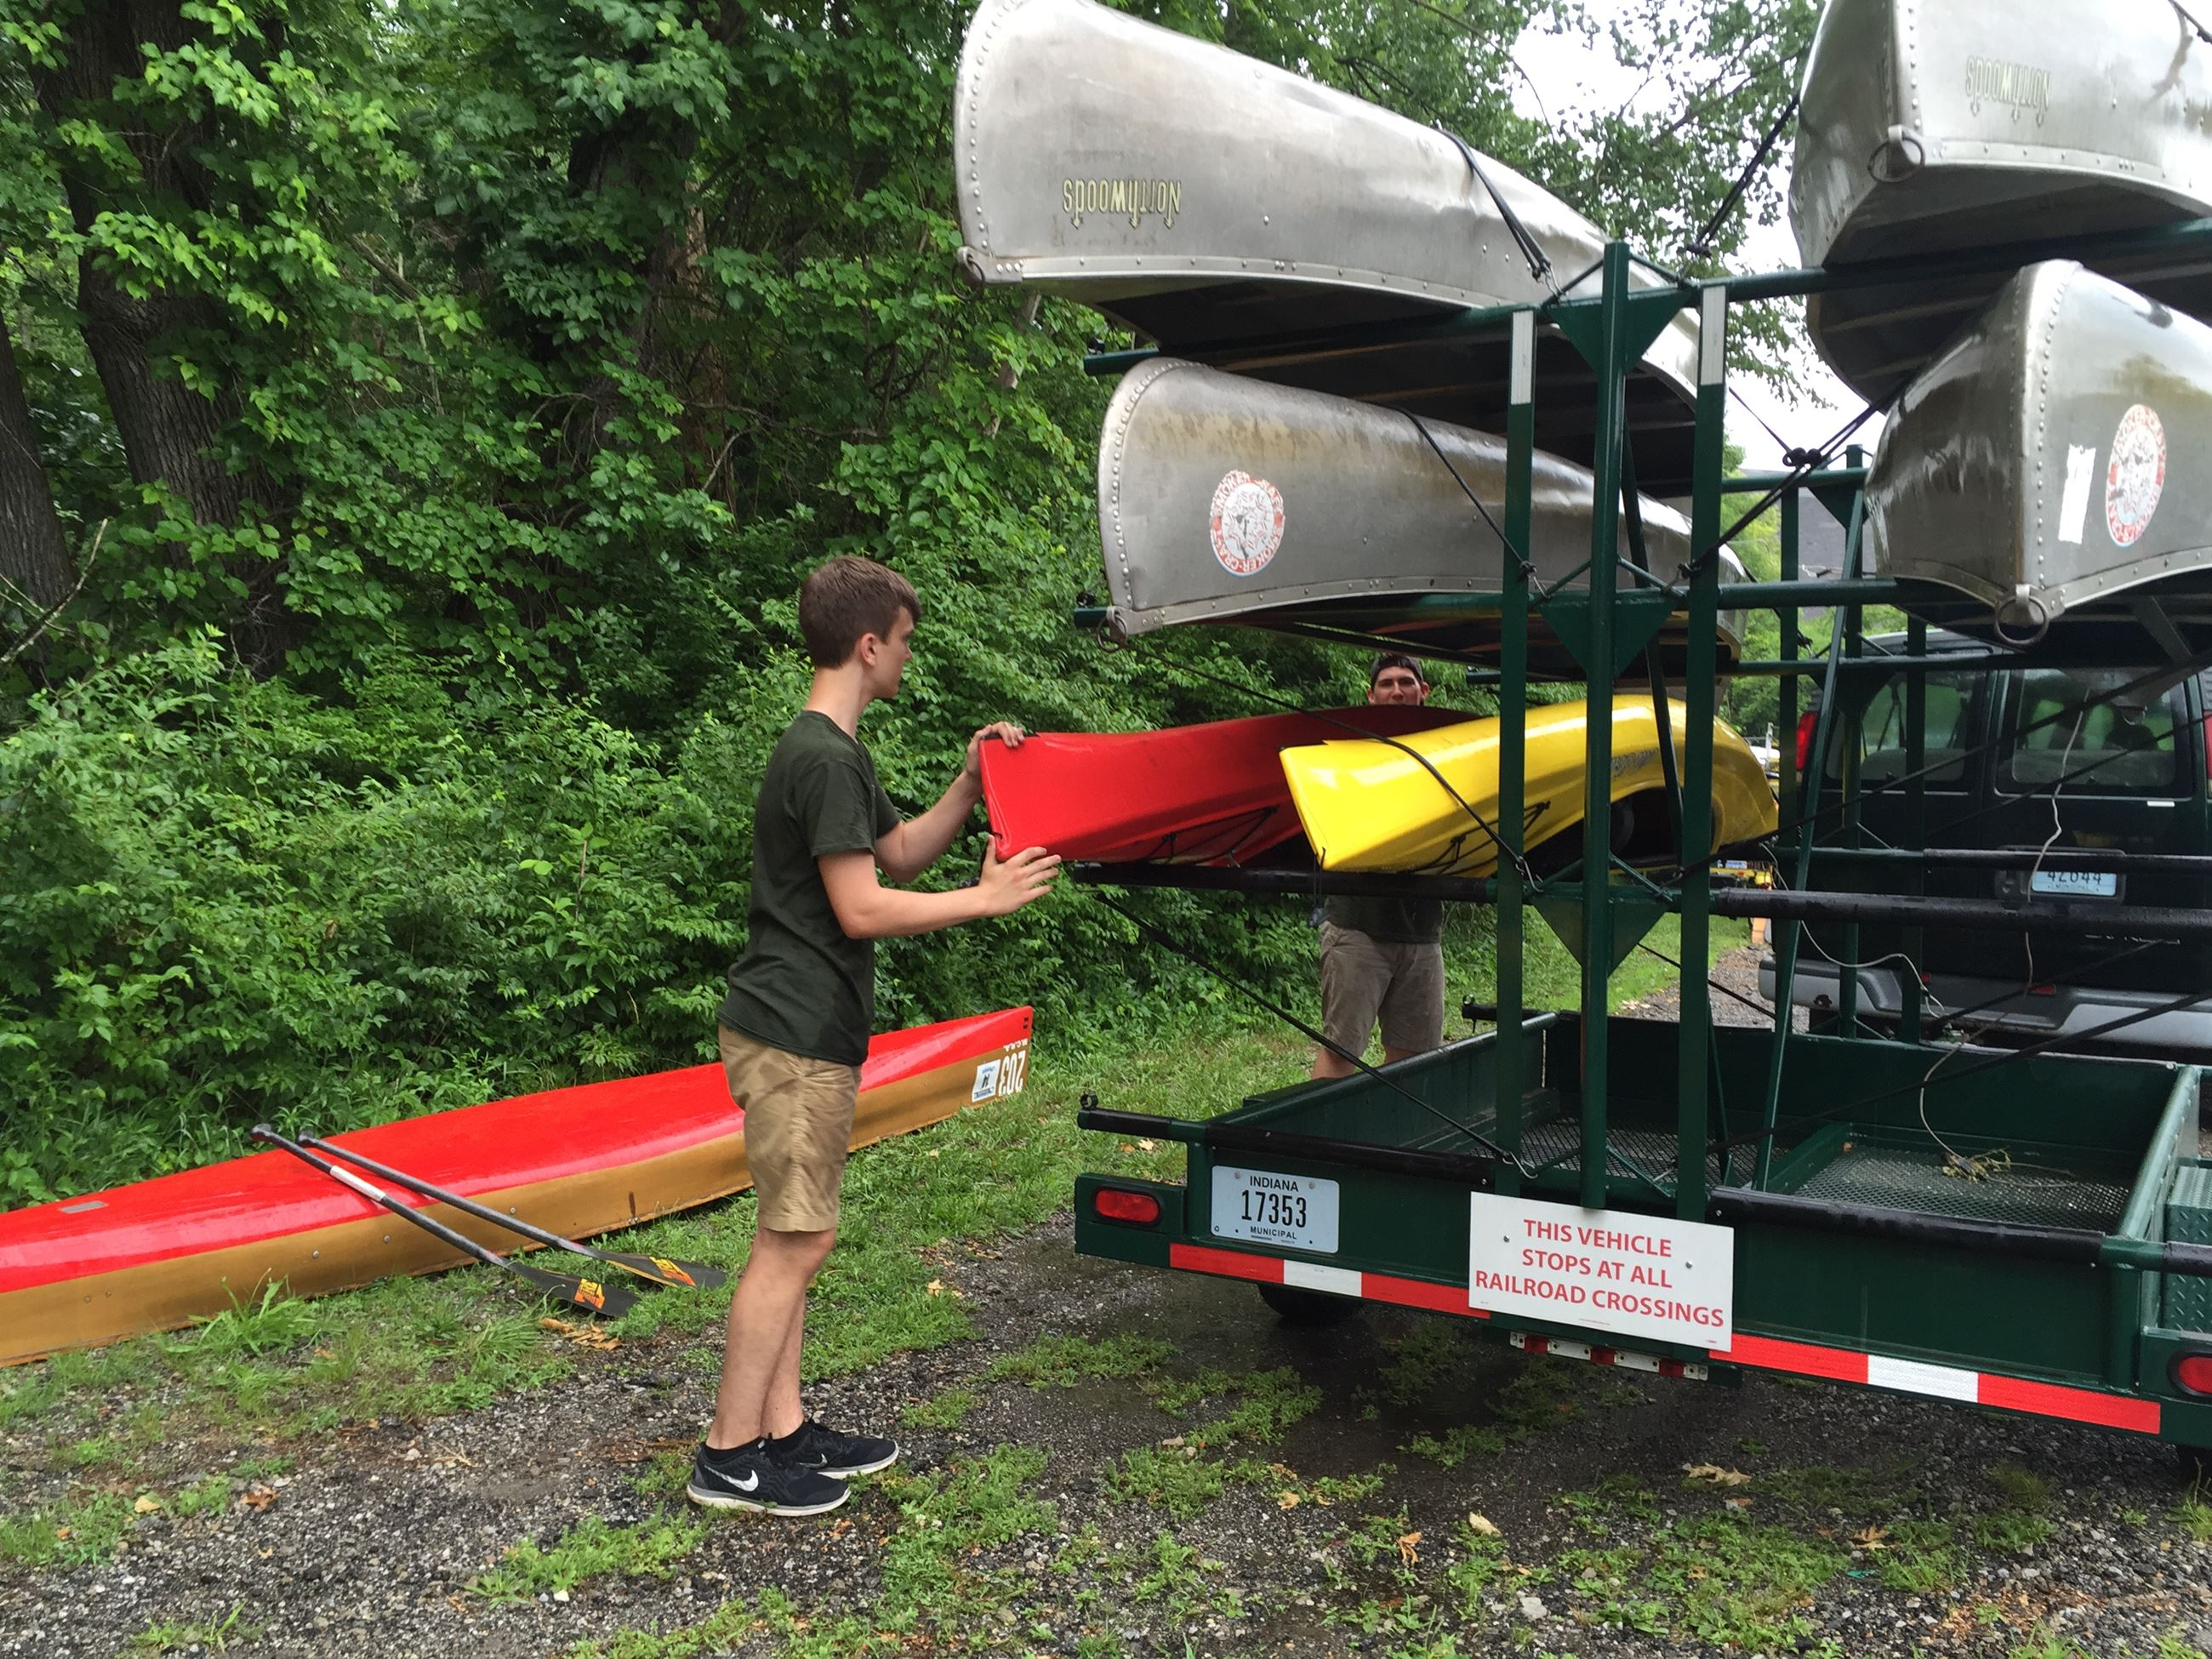 canoe rental staff at St. Patrick&#39s County Park loads trailer